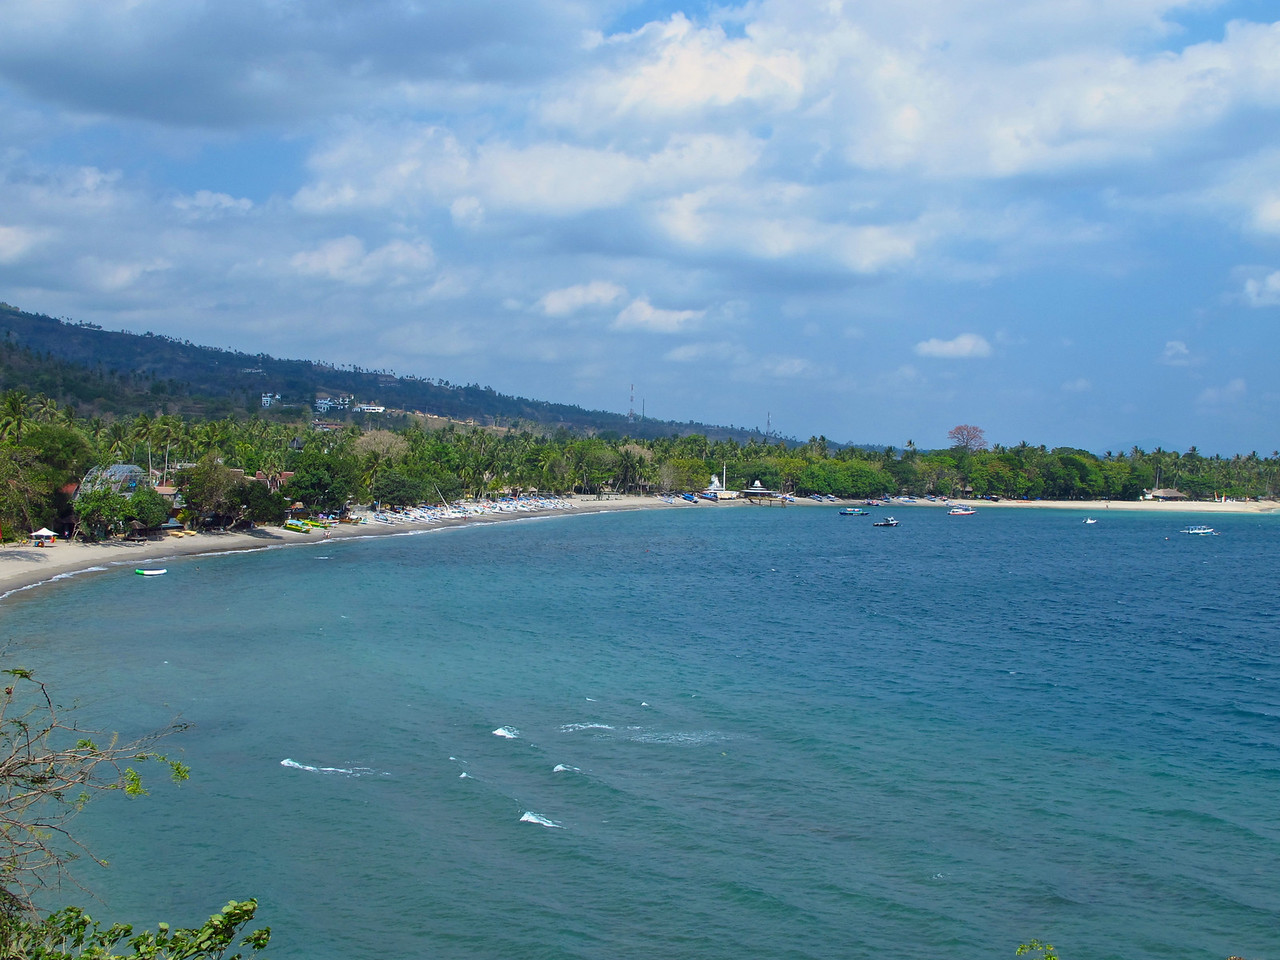 A look at Senggigi from the hillside outside of town.